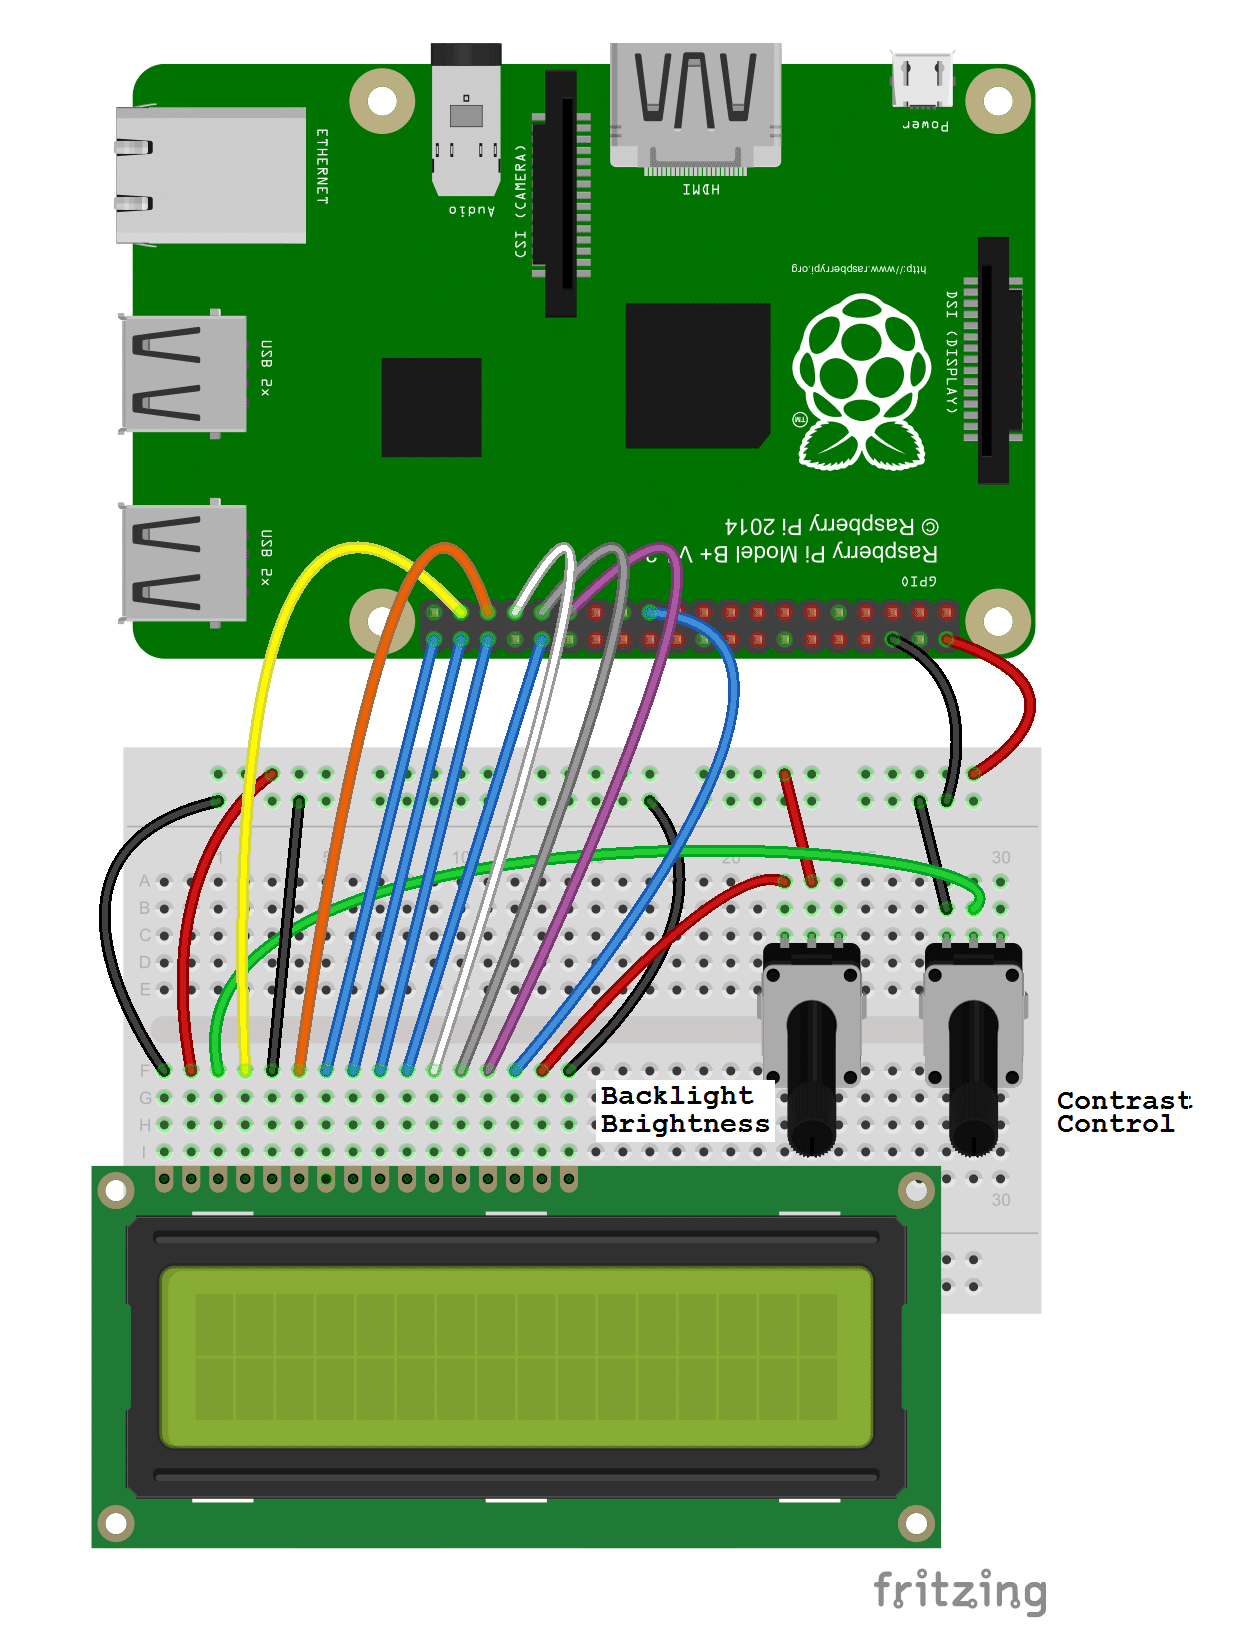 How To Setup An Lcd On The Raspberry Pi And Program It With Python Wiring Arduino 8 Bit Mode Connection Diagram